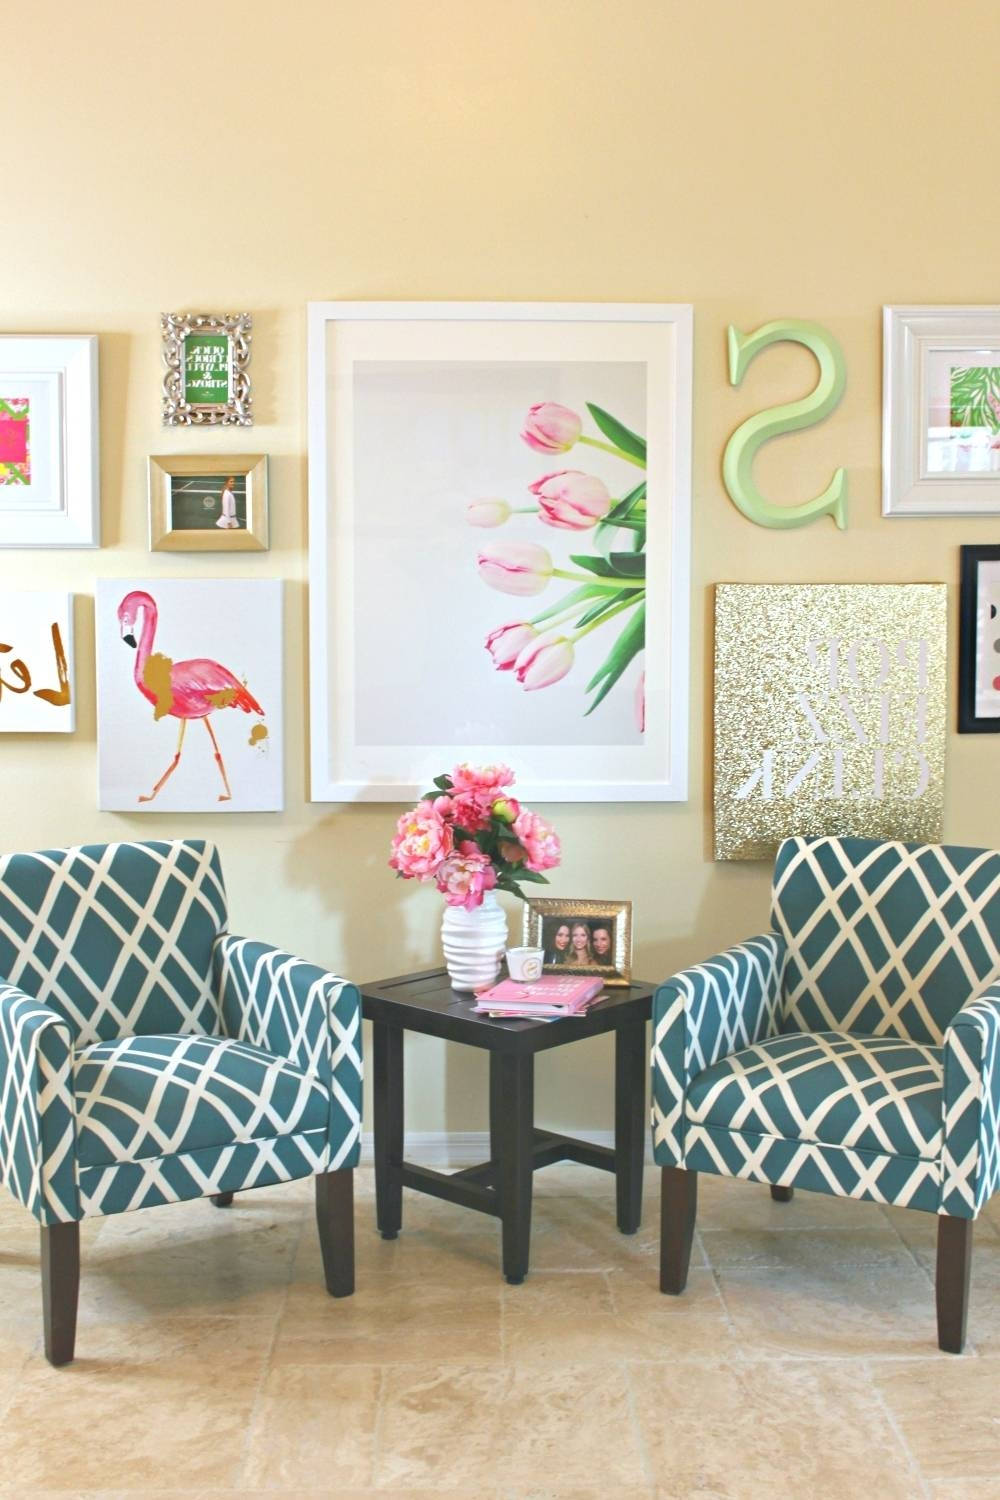 Home Design : 81 Amazing Wall Art For Living Rooms With 2017 Vibrant Wall Art (View 8 of 20)